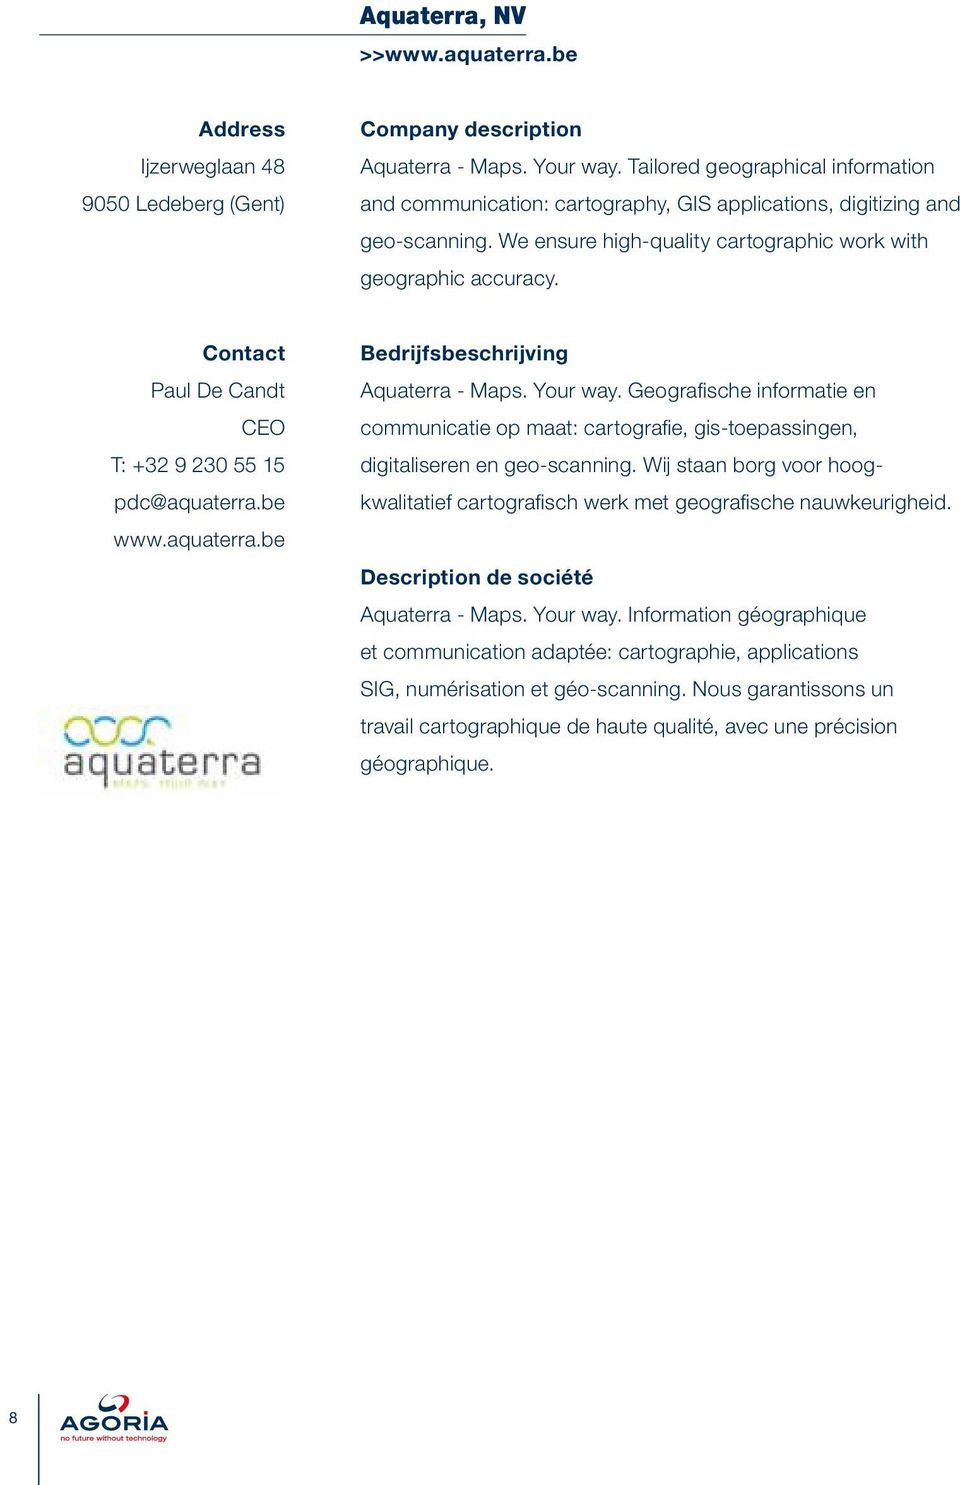 Paul De Candt CEO T: +32 9 230 55 15 pdc@aquaterra.be www.aquaterra.be Bedrijfsbeschrijving Aquaterra - Maps. Your way.